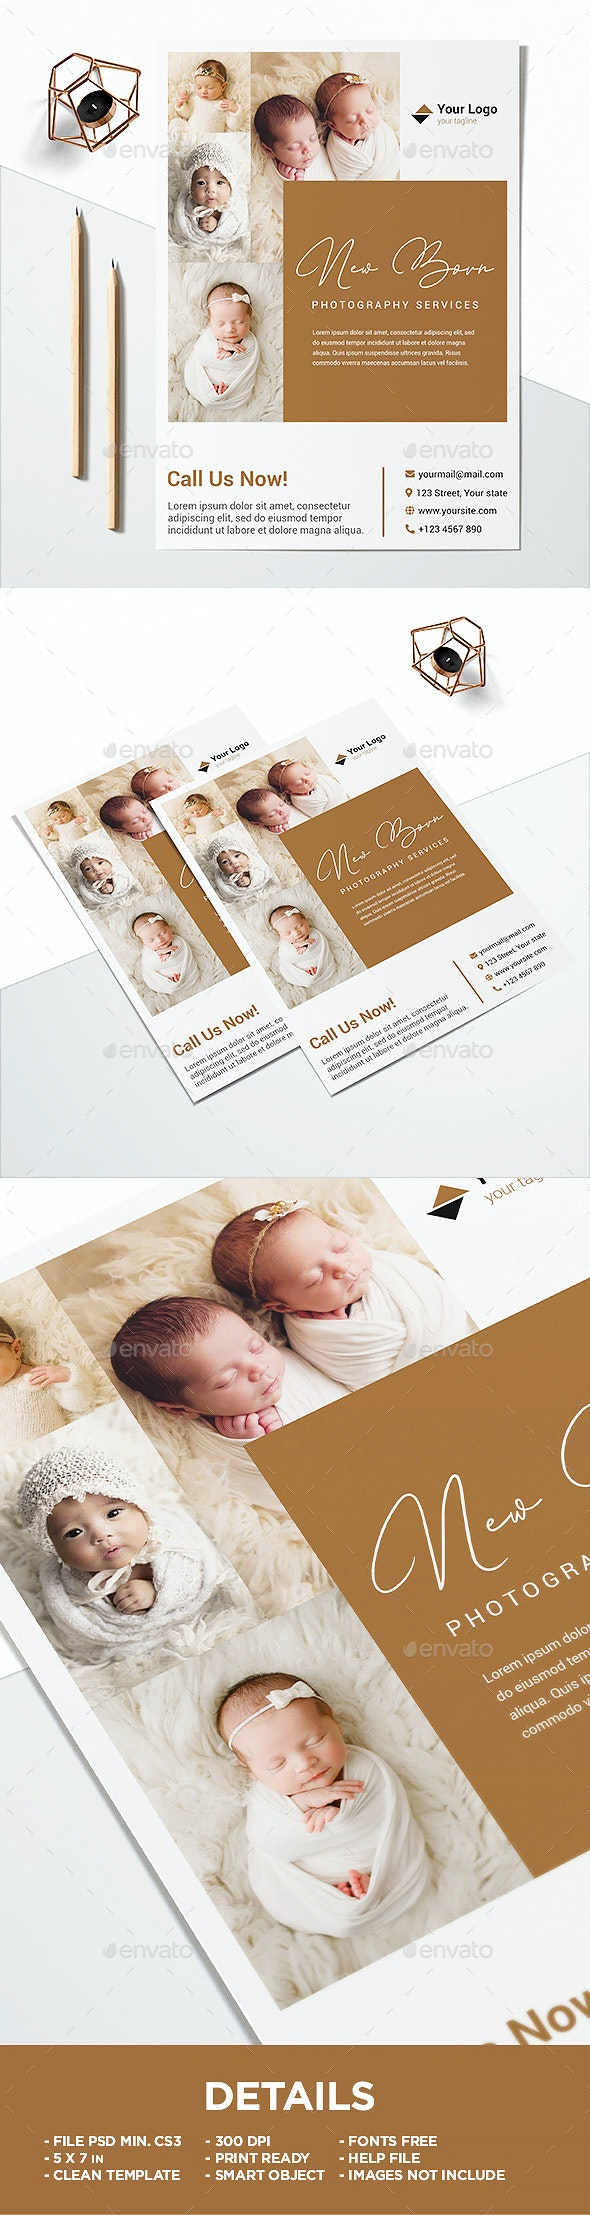 Pricelist New Born Photography Flyer - Corporate Flyers